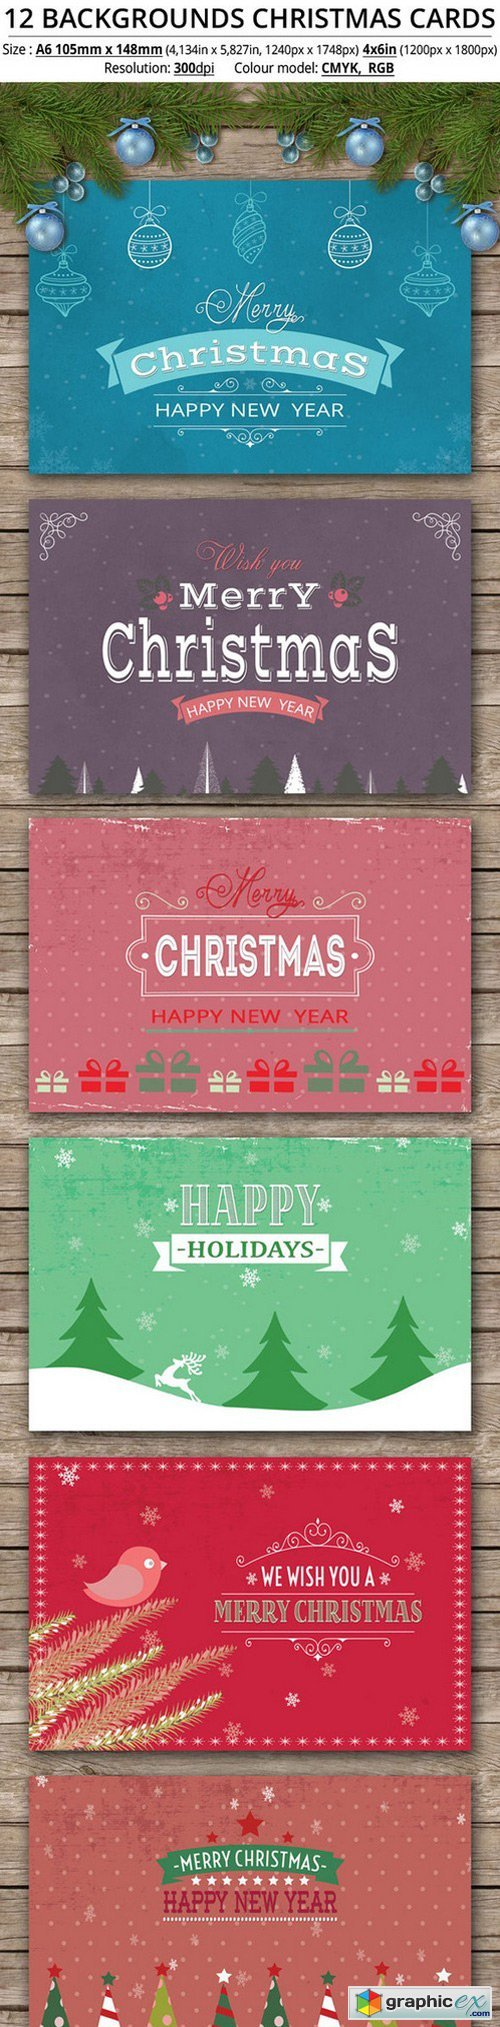 12 Backgrounds Christmas Cards